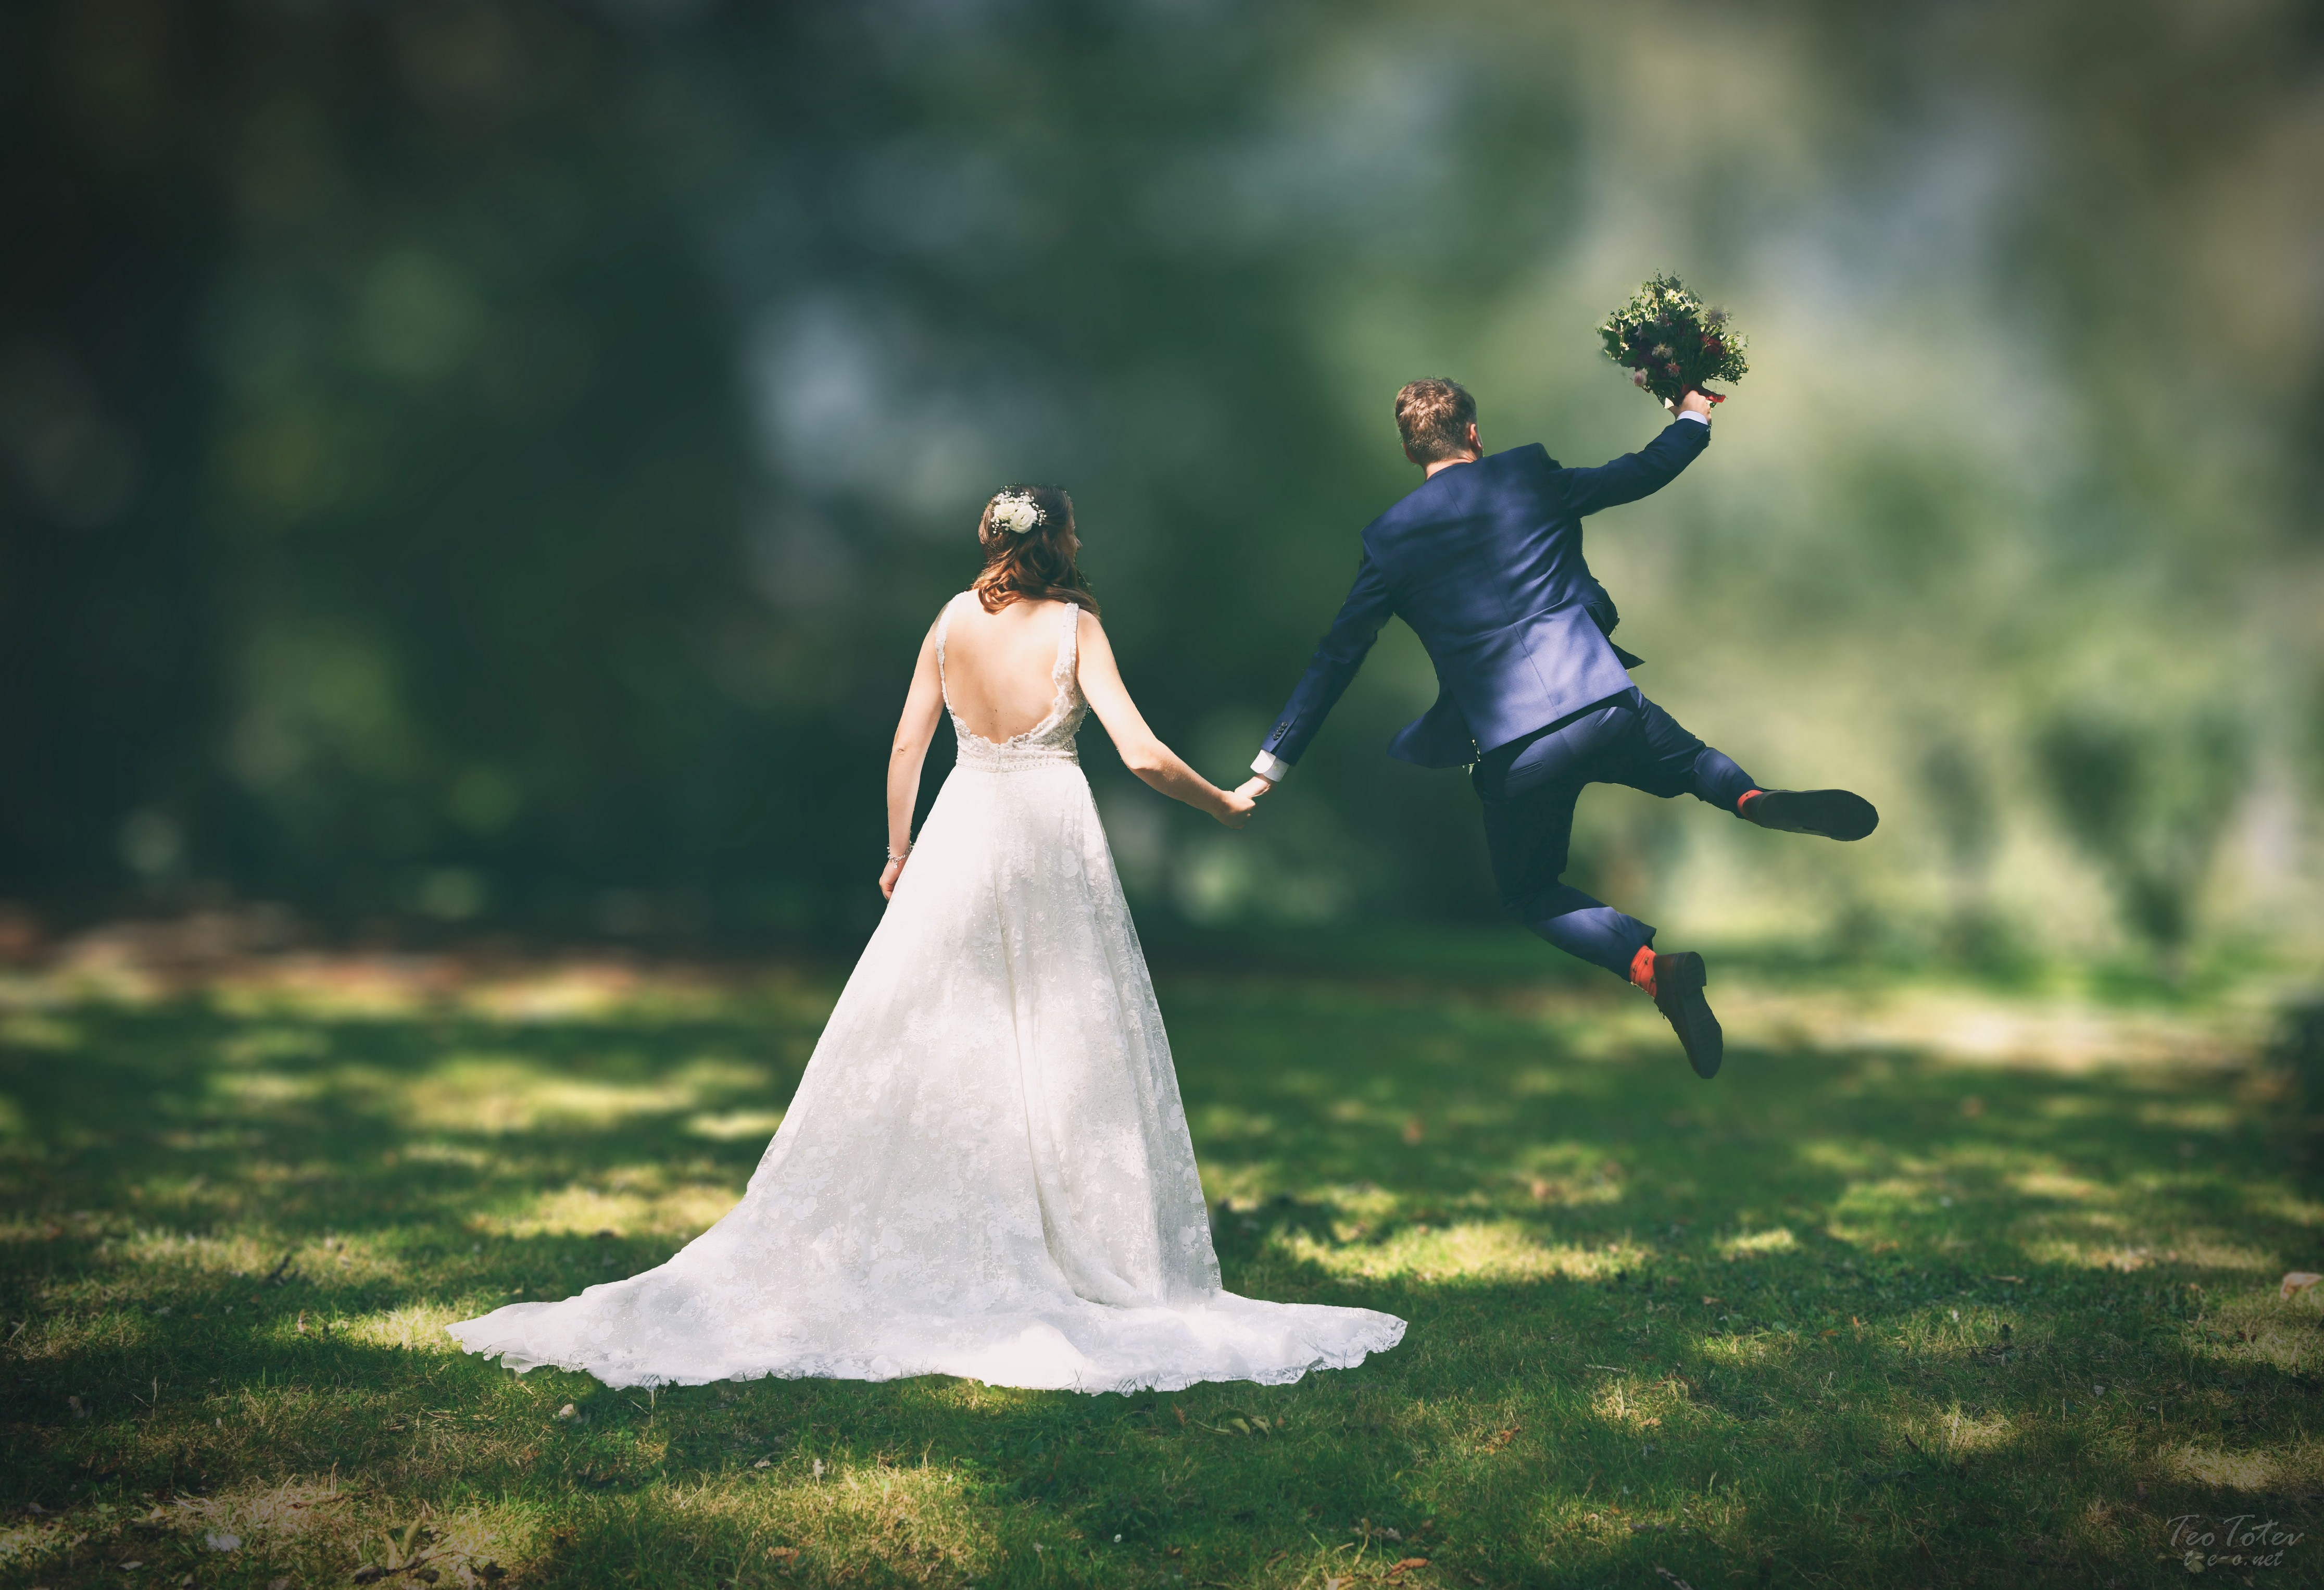 Wedding Jump out of joy